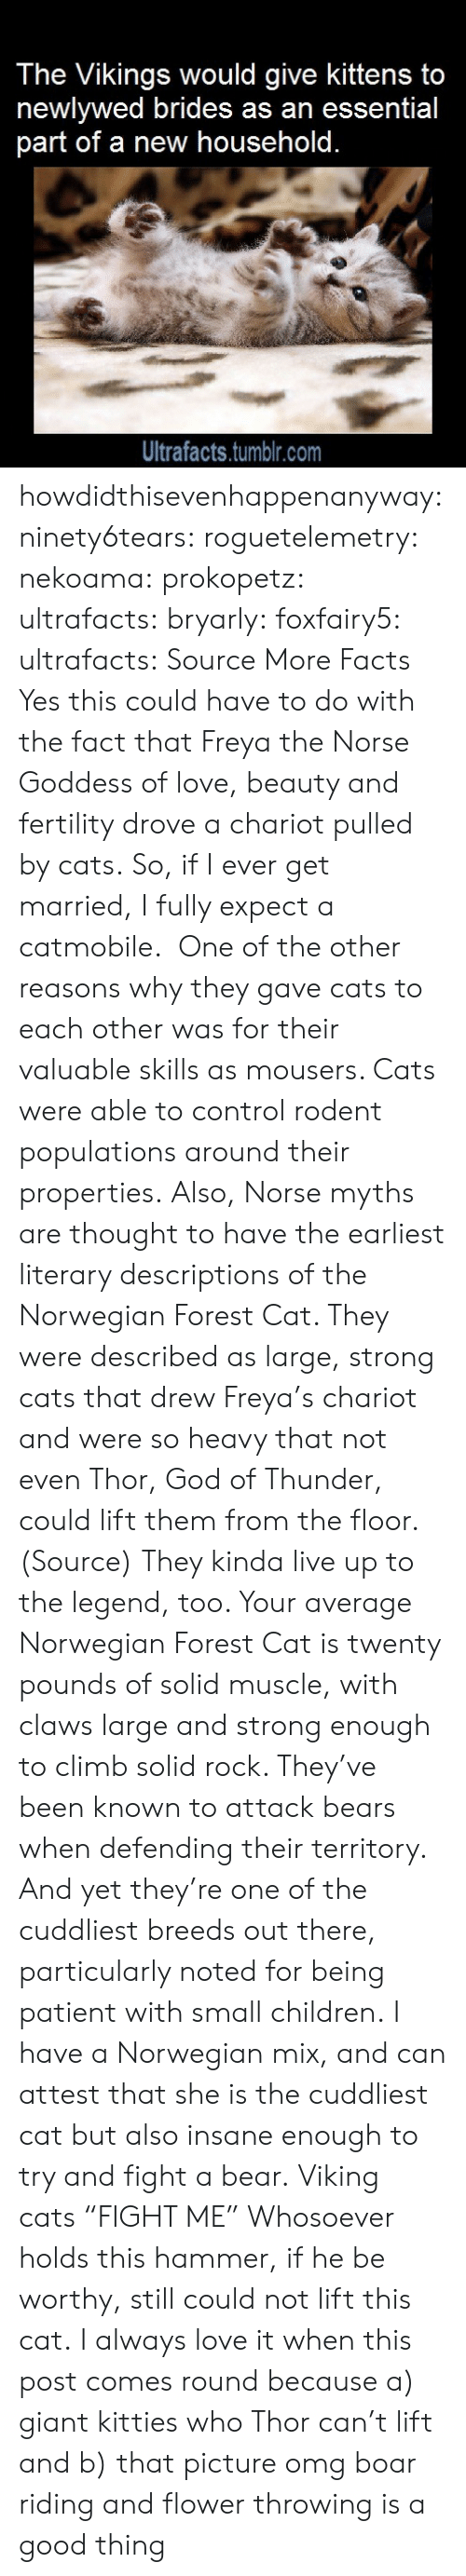 "Cats, Children, and Facts: The Vikings would give kittens to  newlywed brides as an essential  part of a new household.  Ultrafacts.tumblr.com howdidthisevenhappenanyway: ninety6tears:  roguetelemetry:   nekoama:   prokopetz:   ultrafacts:  bryarly:  foxfairy5:  ultrafacts:  Source More Facts  Yes this could have to do with the fact that Freya the Norse Goddess of love, beauty and fertility drove a chariot pulled by cats.  So, if I ever get married, I fully expect a catmobile.   One of the other reasons why they gave cats to each other was for their valuable skills as mousers. Cats were able to control rodent populations around their properties. Also, Norse myths are thought to have the earliest literary descriptions of the Norwegian Forest Cat. They were described as large, strong cats that drew Freya's chariot and were so heavy that not even Thor, God of Thunder, could lift them from the floor. (Source)  They kinda live up to the legend, too. Your average Norwegian Forest Cat is twenty pounds of solid muscle, with claws large and strong enough to climb solid rock. They've been known to attack bears when defending their territory. And yet they're one of the cuddliest breeds out there, particularly noted for being patient with small children.   I have a Norwegian mix, and can attest that she is the cuddliest cat but also insane enough to try and fight a bear.   Viking cats ""FIGHT ME""   Whosoever holds this hammer, if he be worthy, still could not lift this cat.   I always love it when this post comes round because a) giant kitties who Thor can't lift and b) that picture omg boar riding and flower throwing is a good thing"